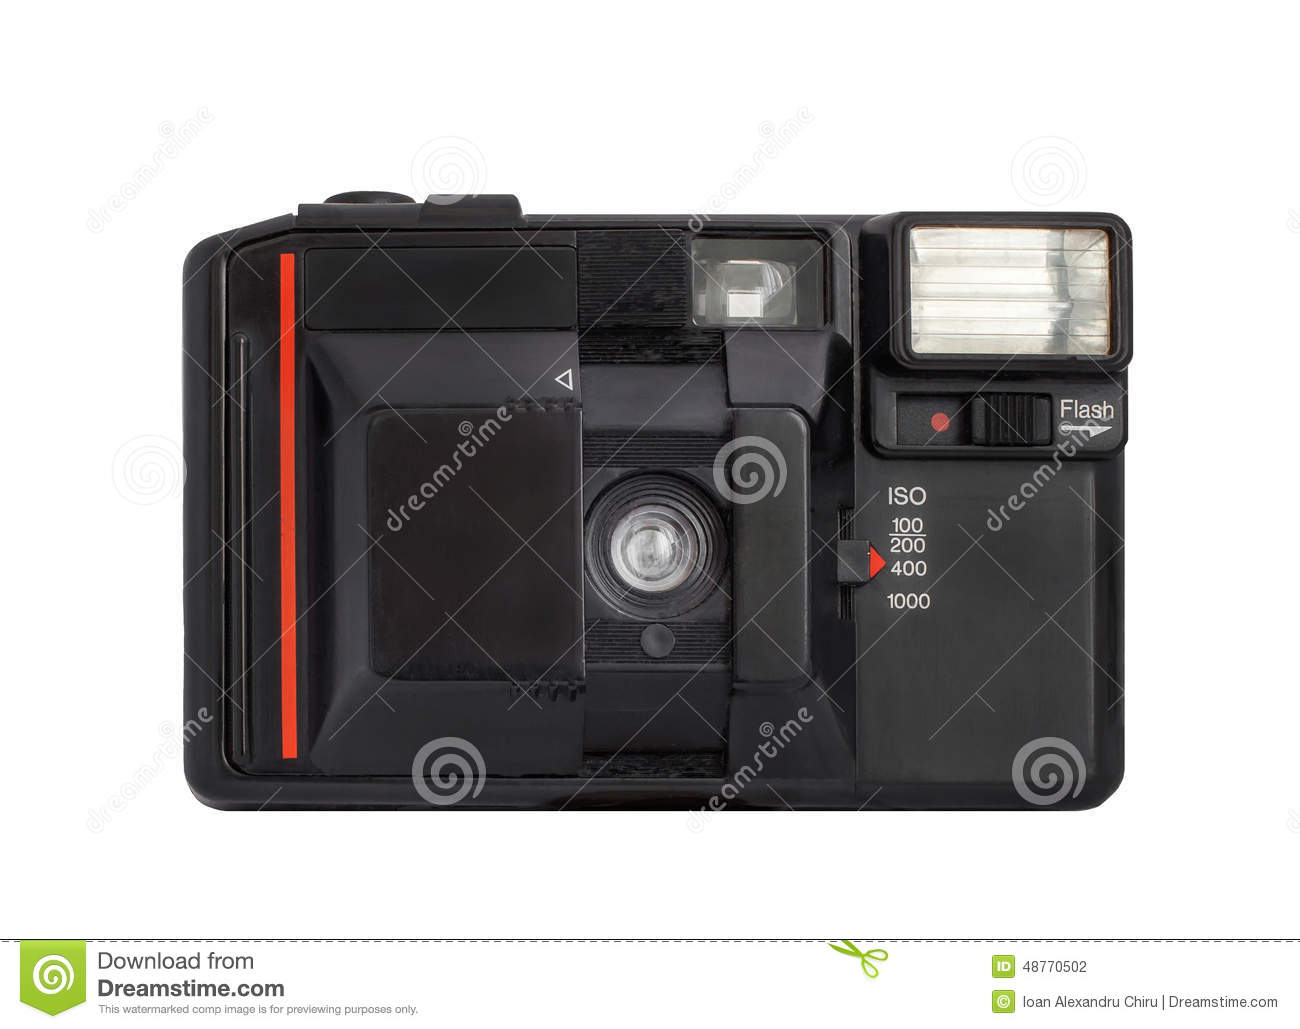 Modern compact analog camera on film 35mm format isolated on a white background